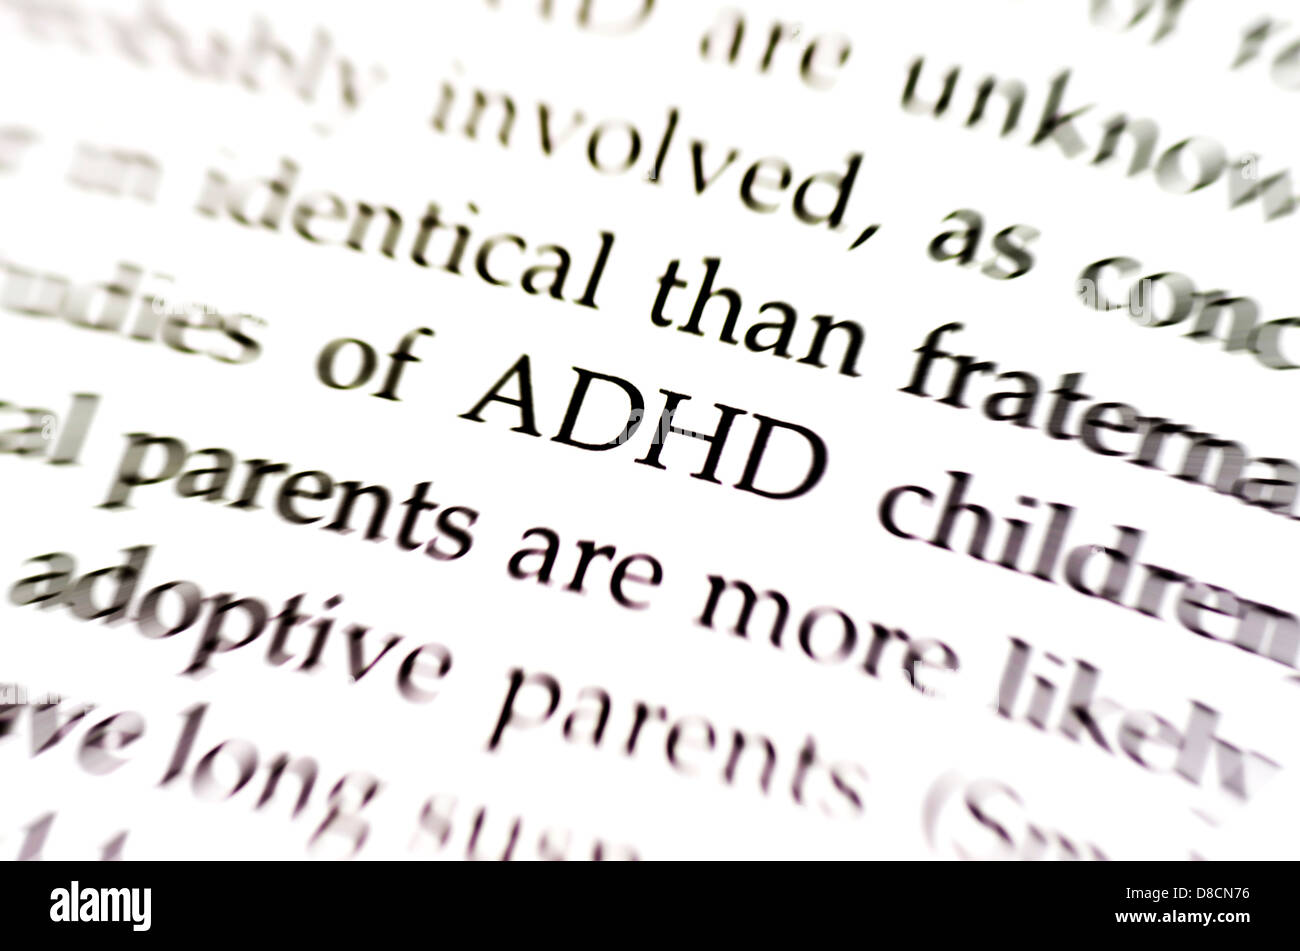 the word adhd in focus surrounded by blurred words - Stock Image